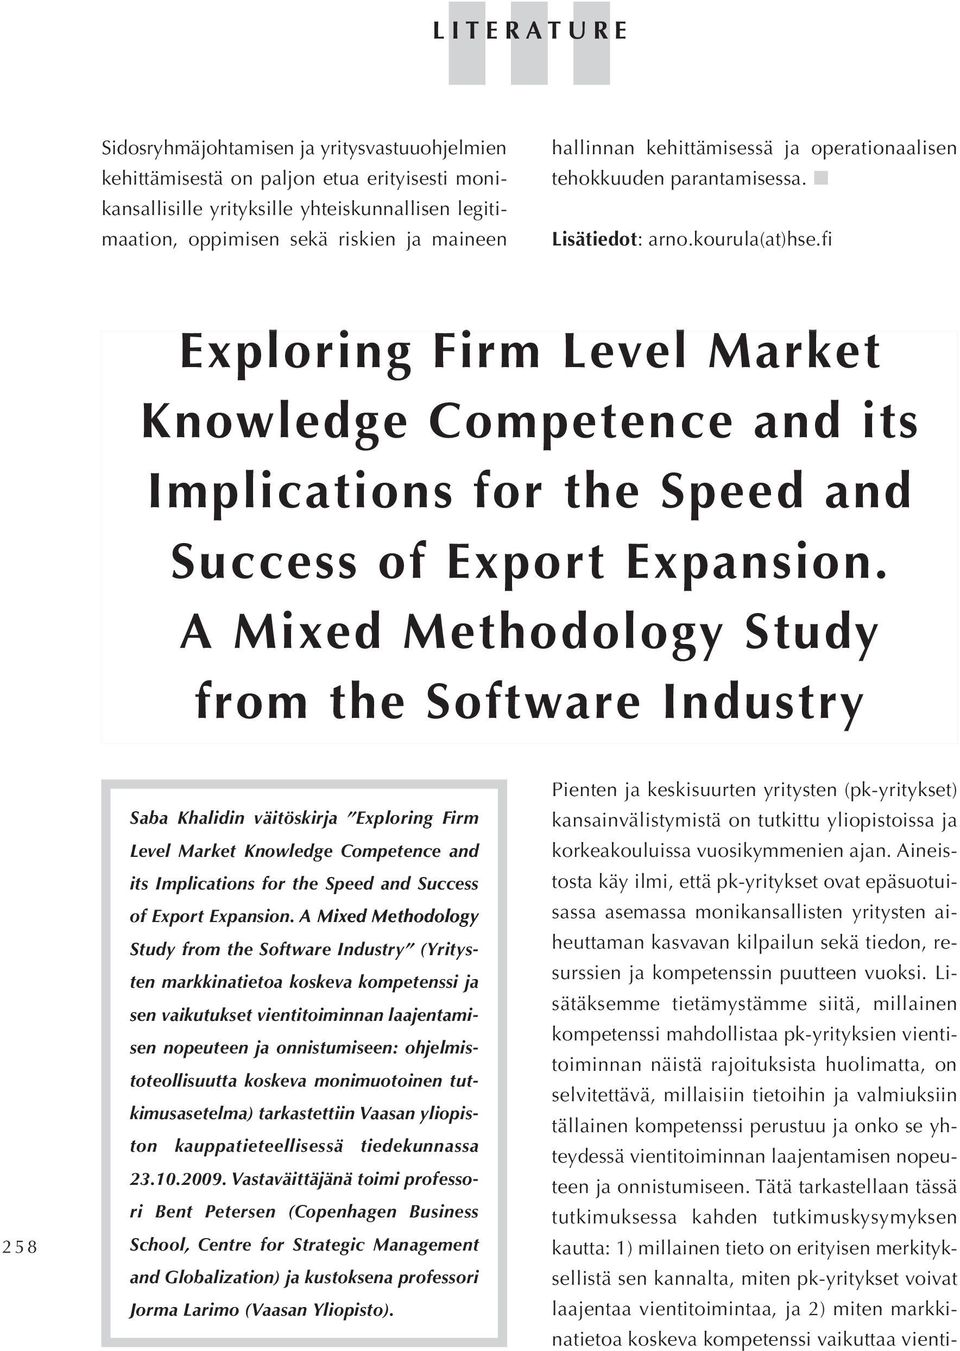 fi Exploring Firm Level Market Knowledge Competence and its Implications for the Speed and Success of Export Expansion.